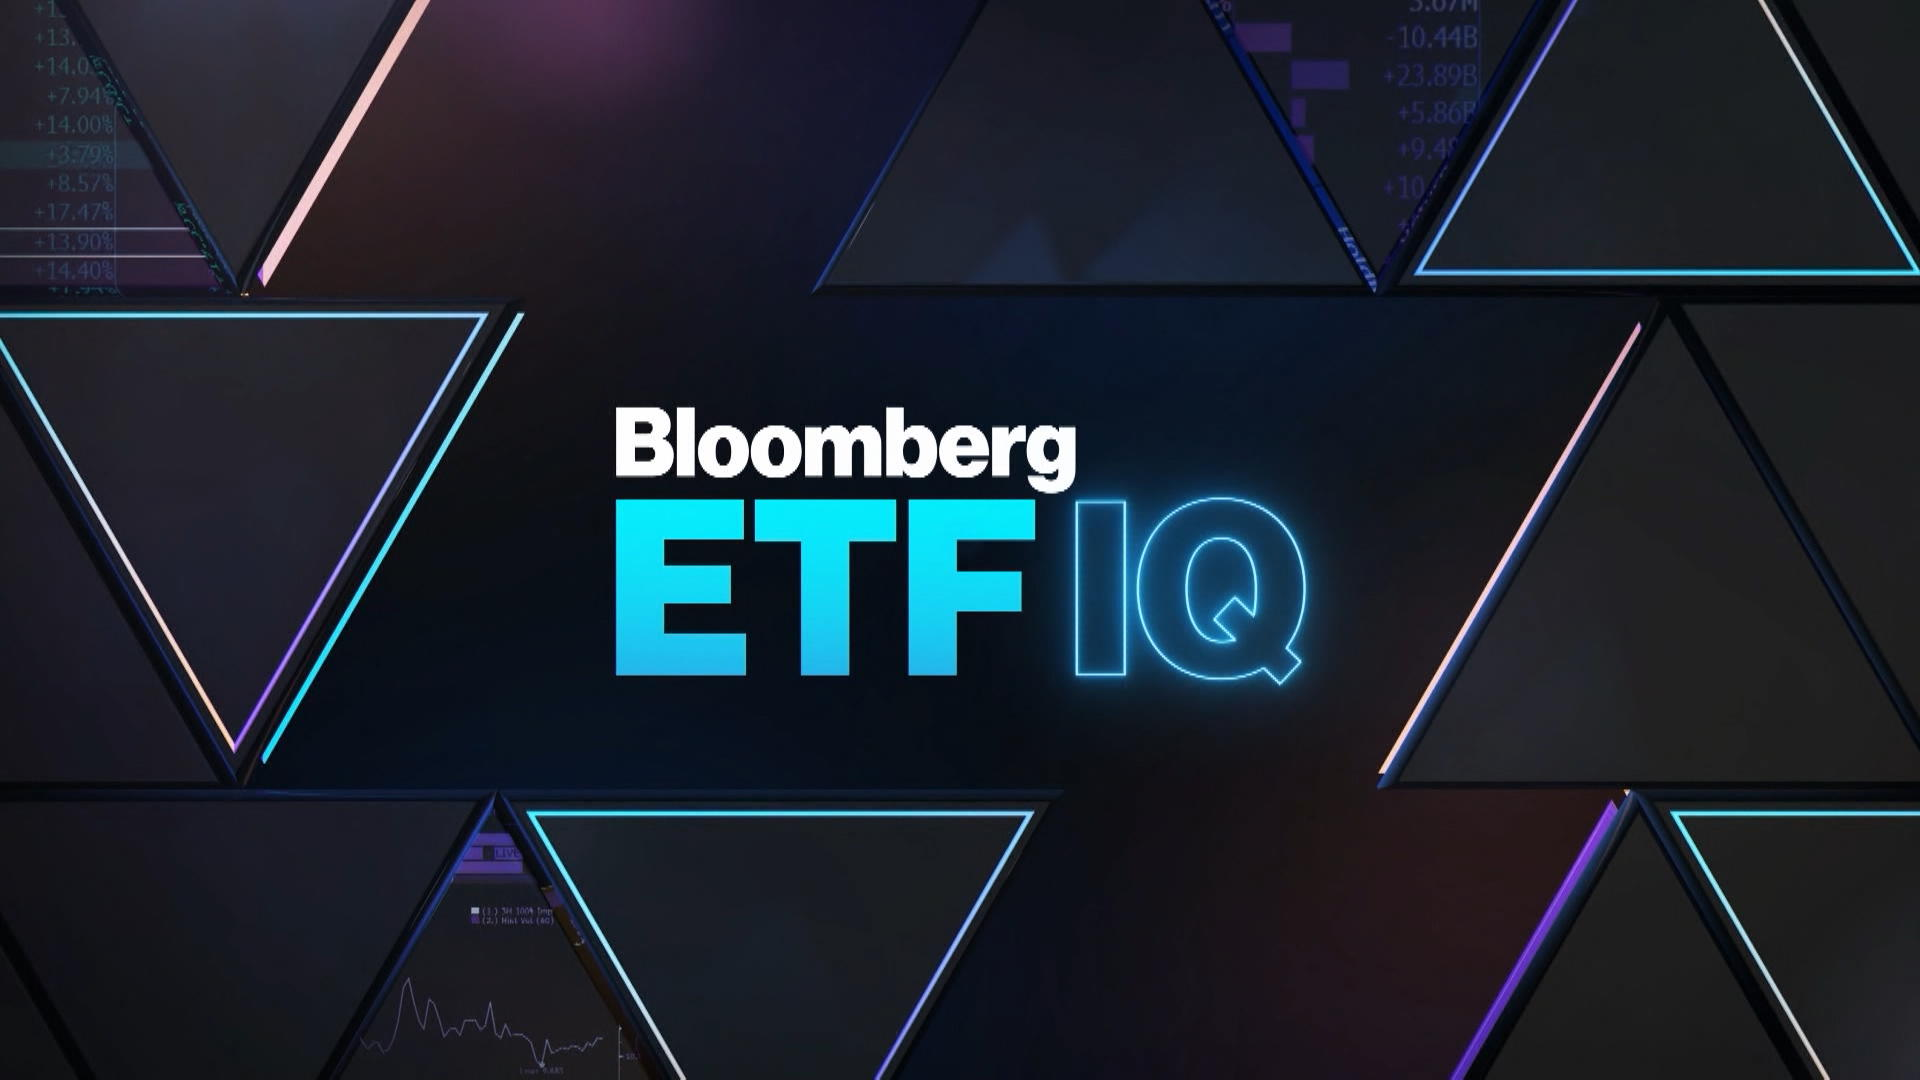 'Bloomberg ETF IQ' Full Show (08/21/2019)